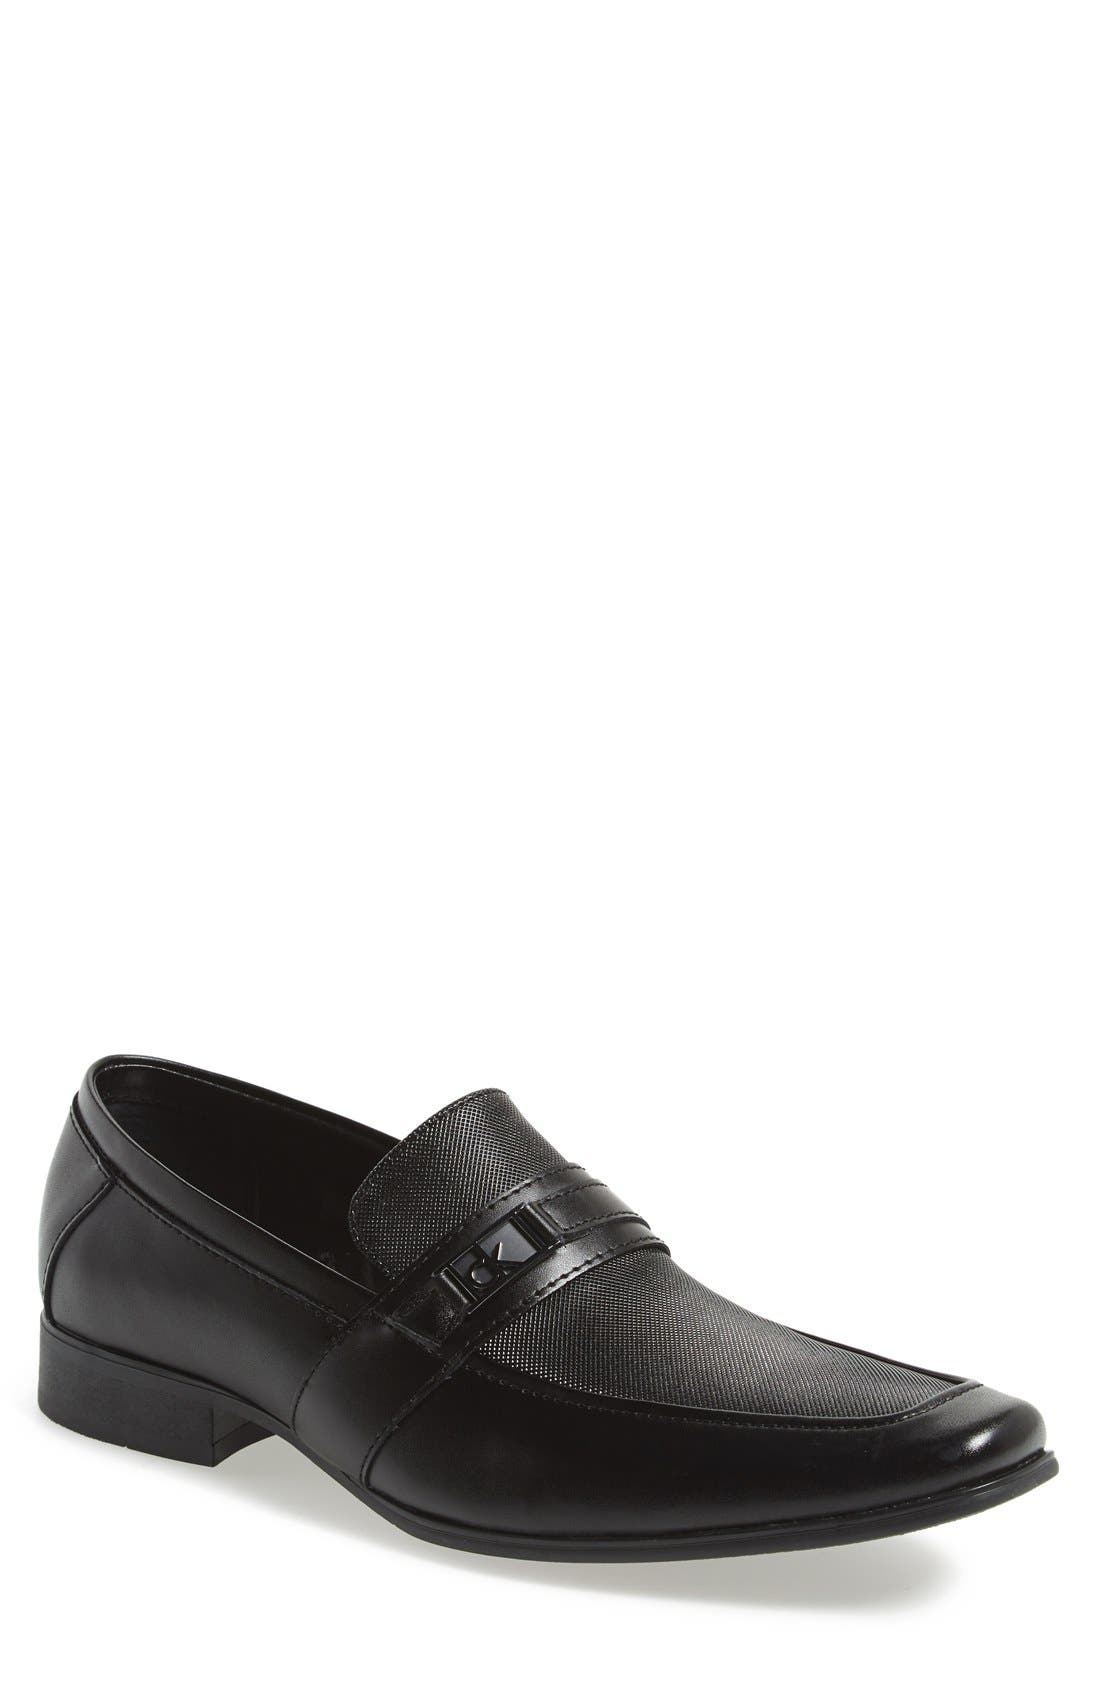 'Bartley' Bit Loafer,                             Main thumbnail 1, color,                             001